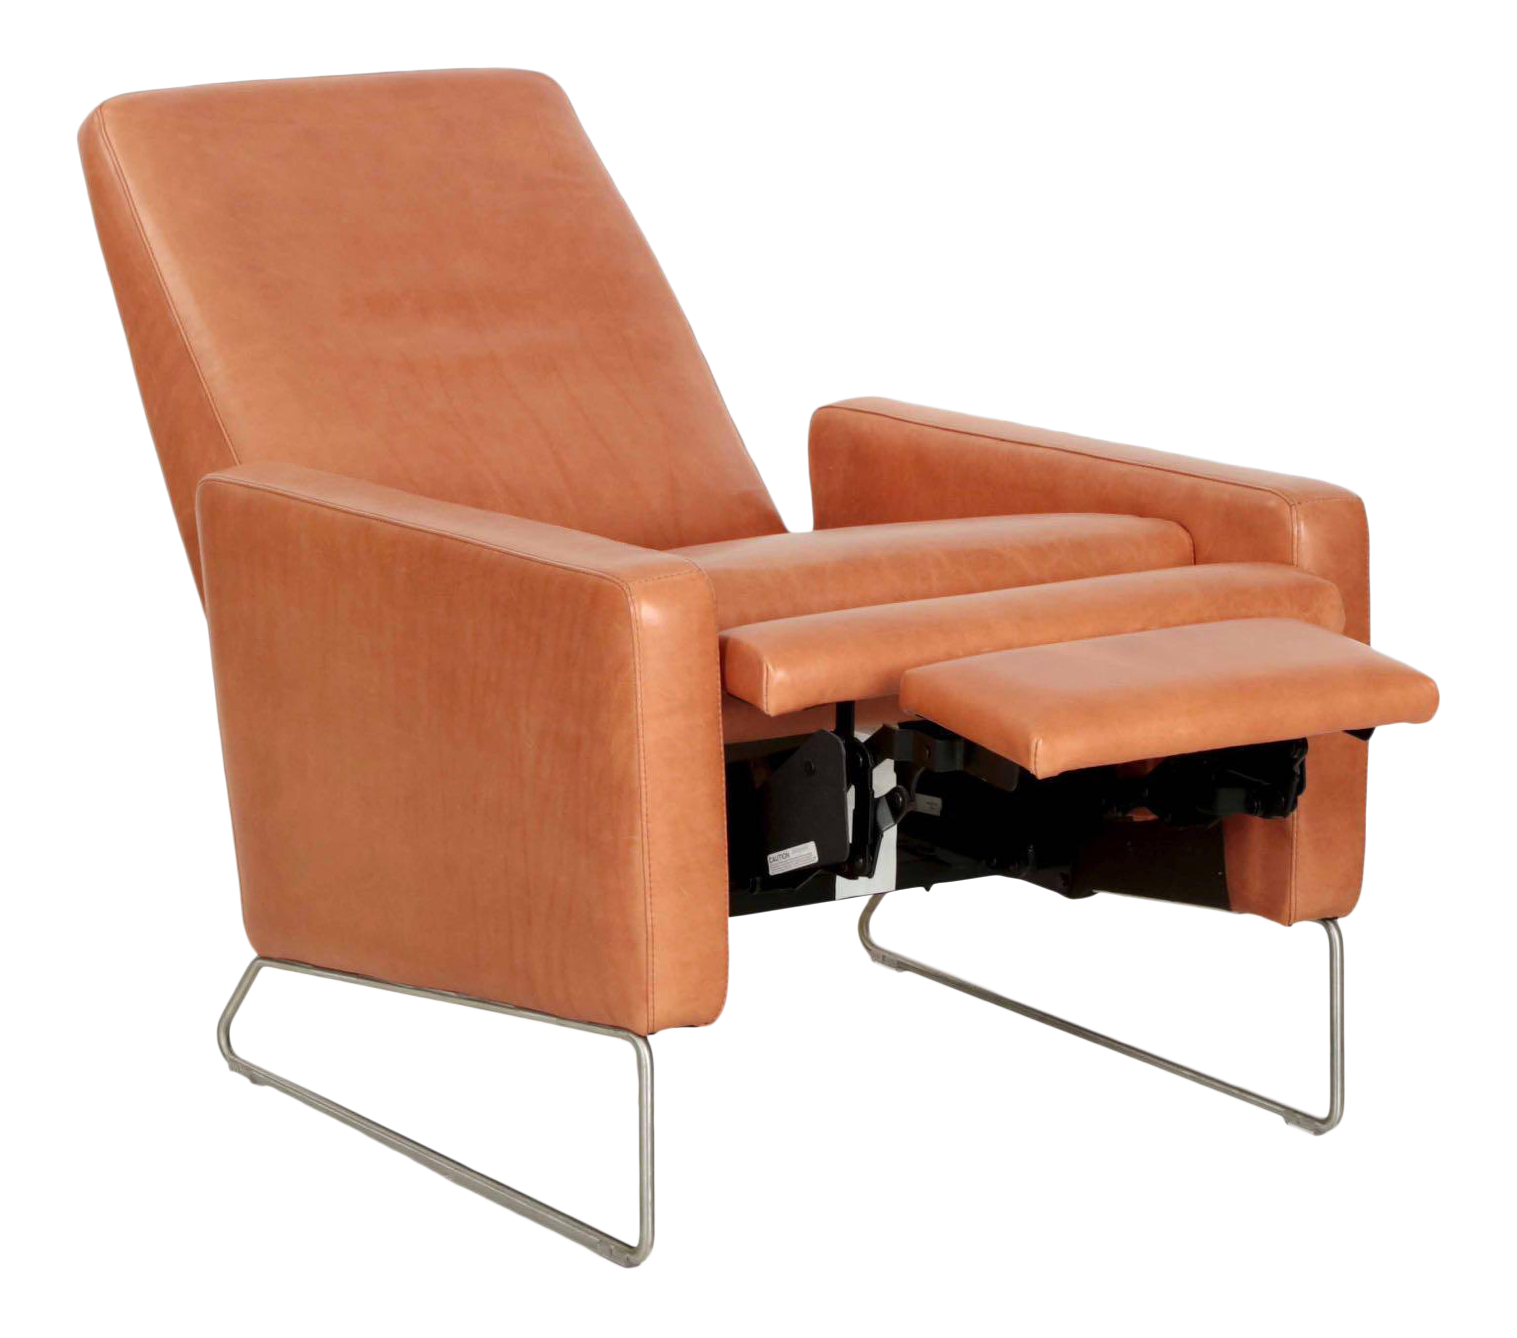 21st Century Modern Leather Reclining Lounge Chair by Design Within Reach  sc 1 st  Chairish & Gently Used Design Within Reach Furniture | Up to 40% off at Chairish islam-shia.org